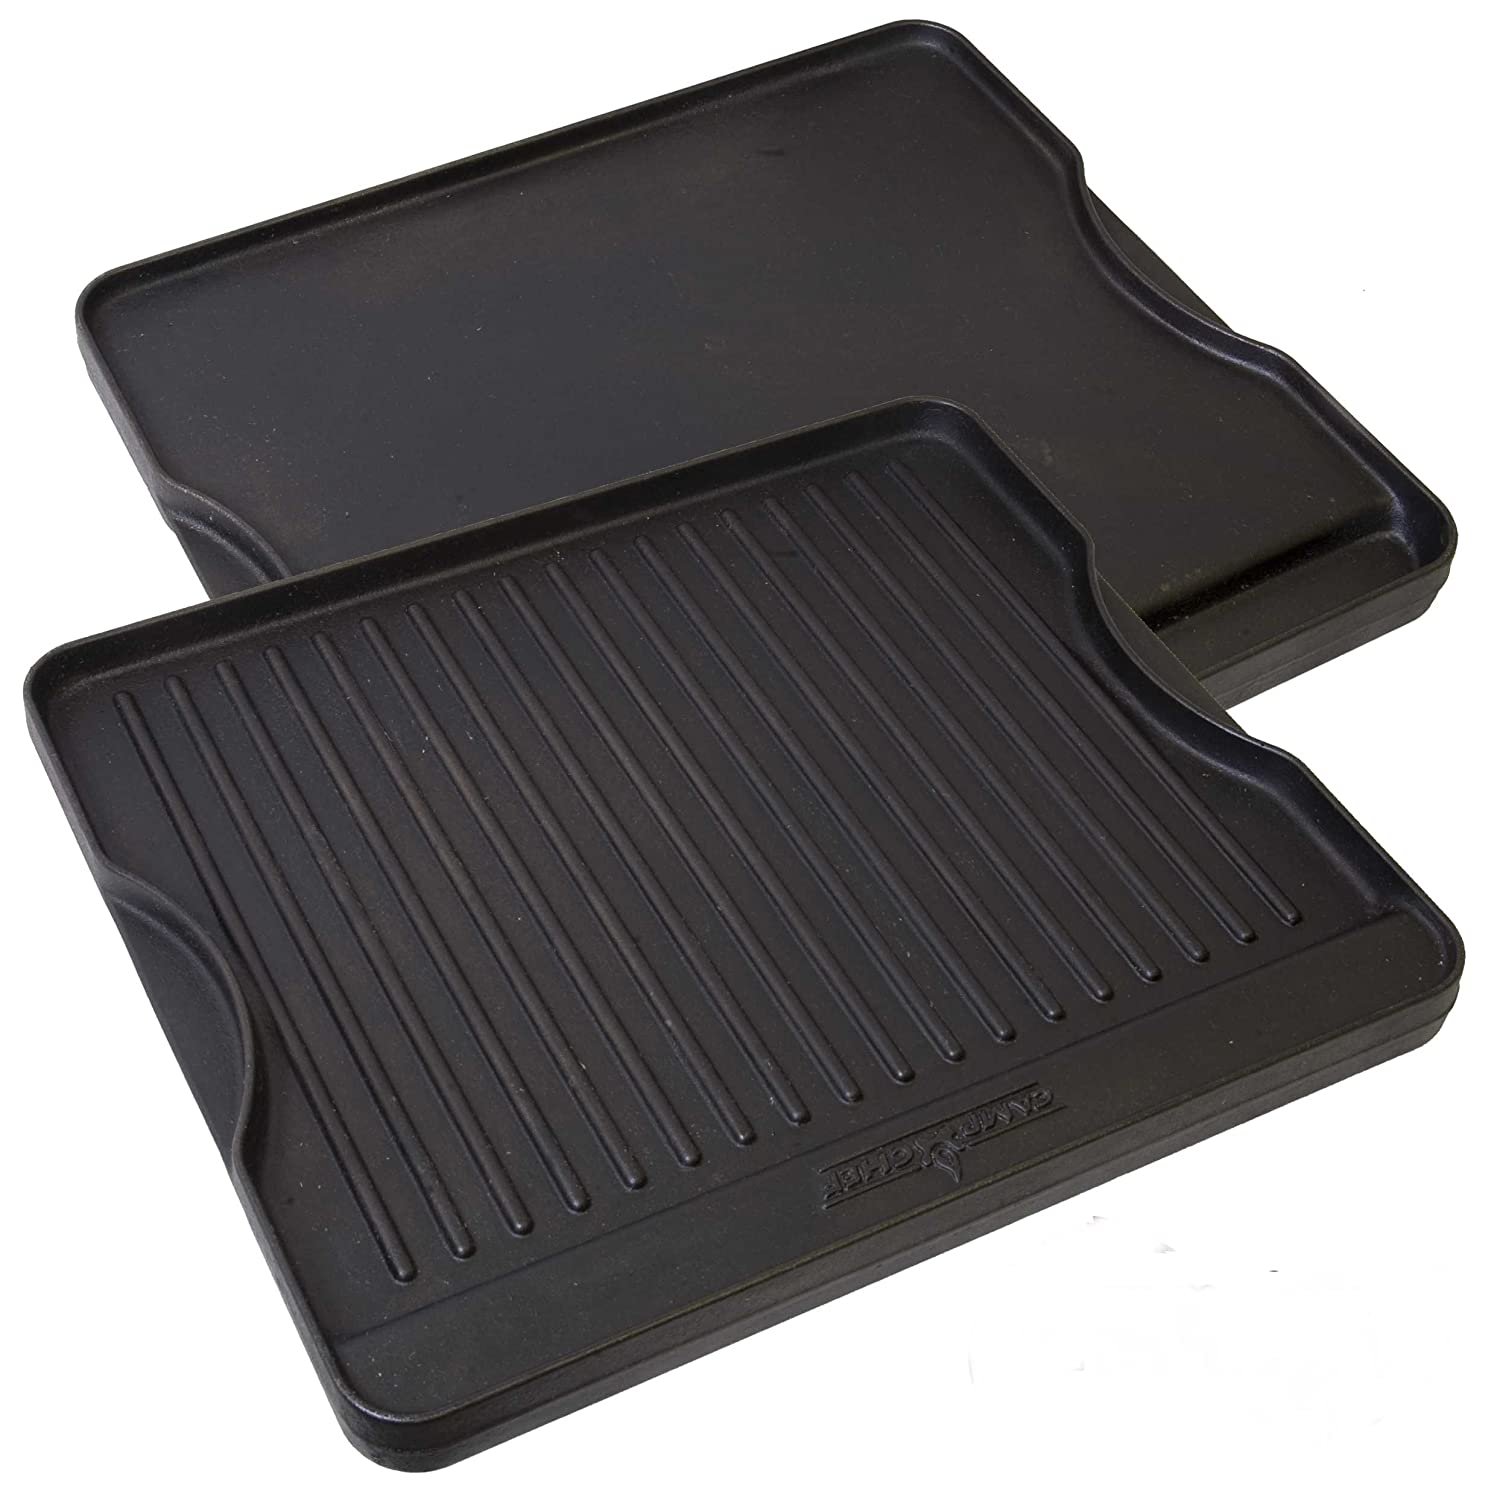 Amazon.com: Griddles - Grilling Cookware & Rotisseries: Patio ...